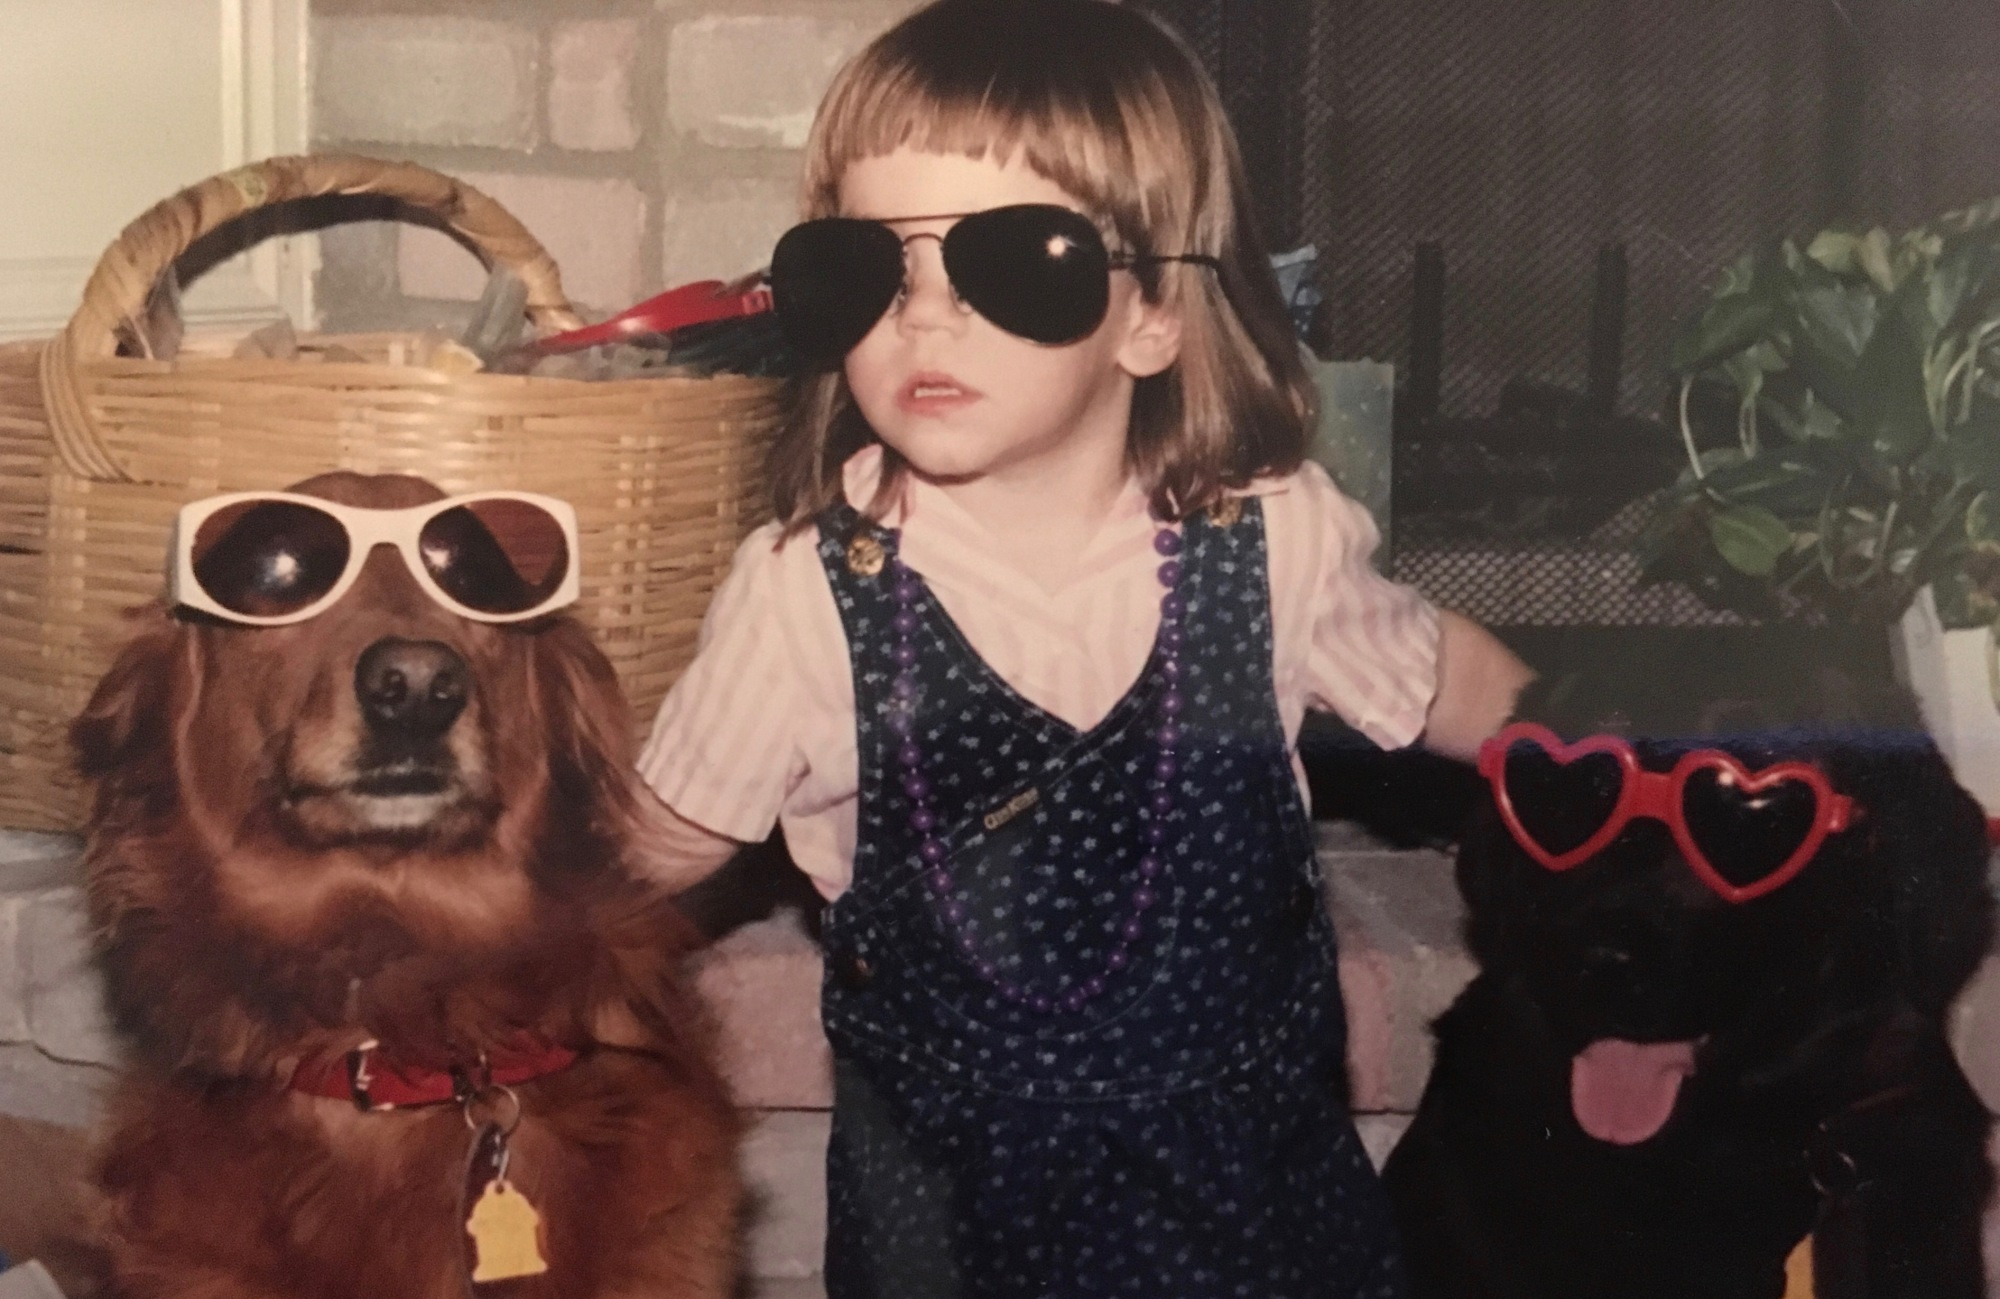 Me with my dogs, Marmey & Raisin, all of us wearing sunglasses